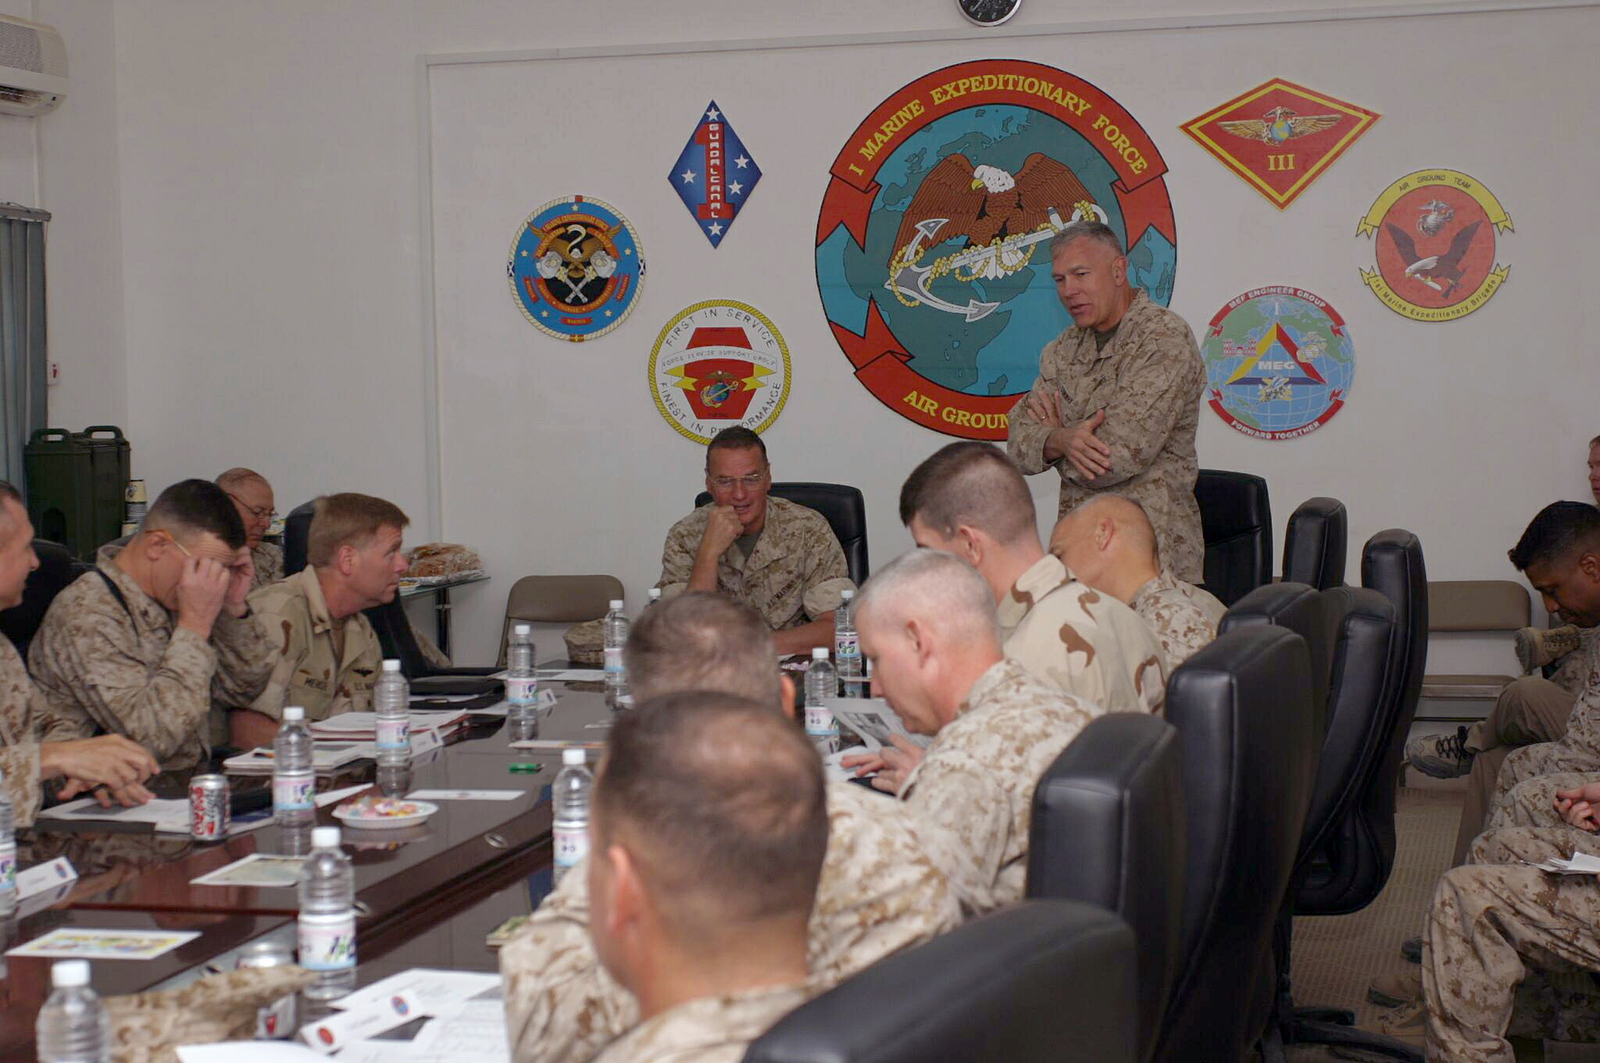 U.S. Marine Corps LT. GEN. James T. Conway (standing), Commander, I Marine Expeditionary Force (I-MEF), hosts a meeting with GEN. James L. Jones (rear, center), Supreme Allied Commander Europe (SACEUR), at Camp Fallujah, Al Anbar Province, Iraq, on Aug. 19, 2004, during Operation Iraqi Freedom.  (U.S. Marine Corps photo by SGT. Chad R. Kiehl) (Released)